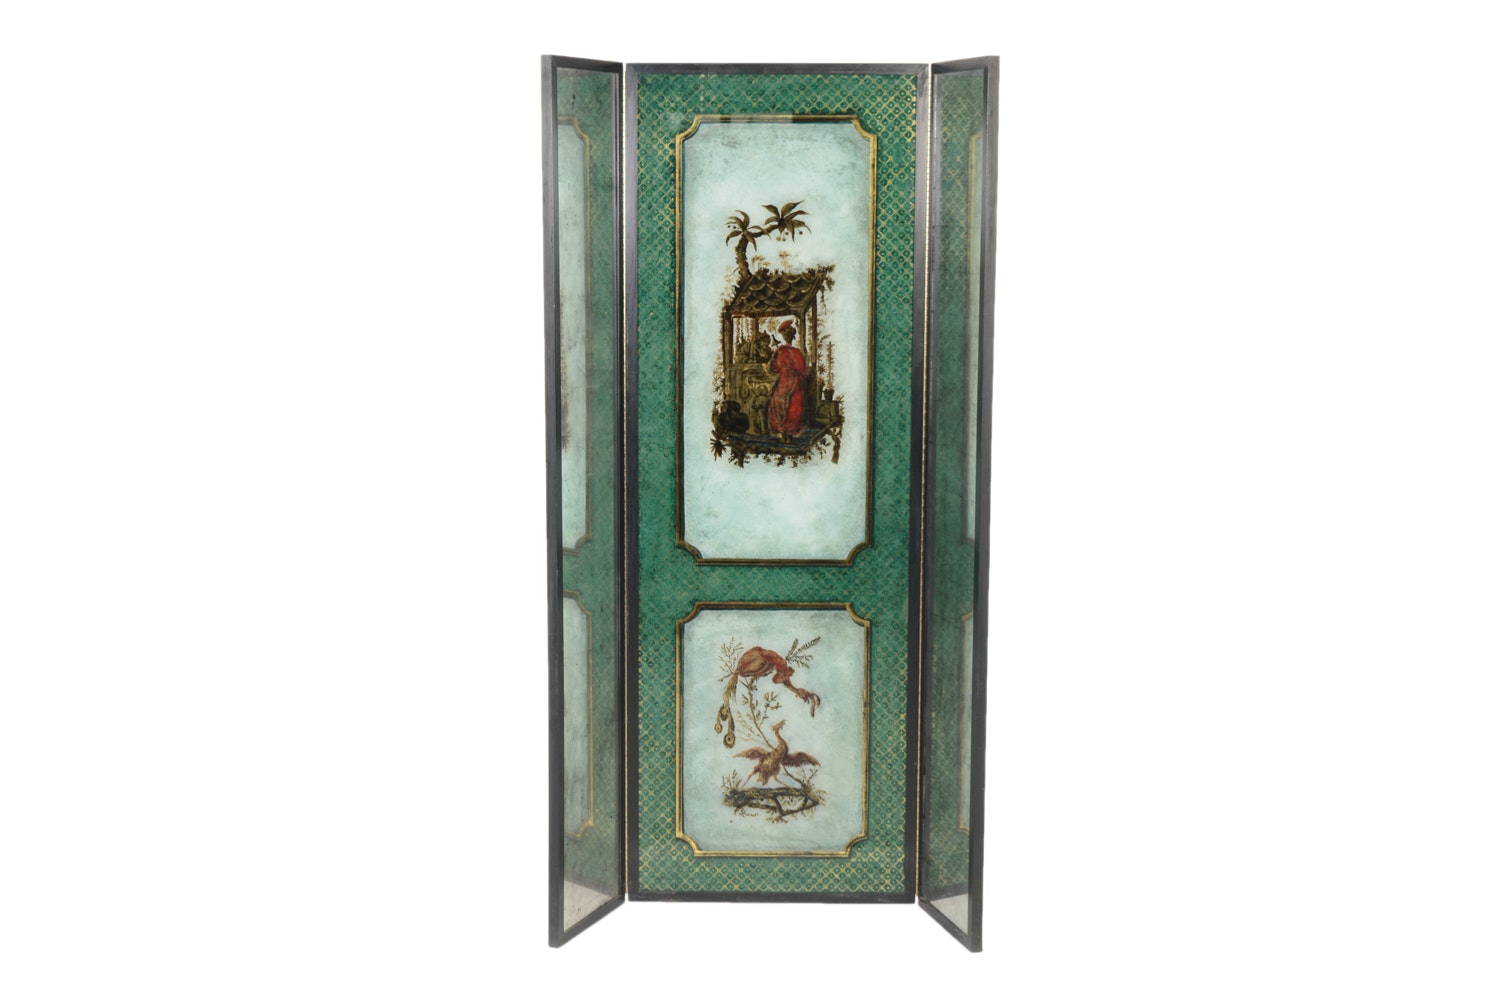 English Chinoiserie Reverse Painted Mirrored Floor Screen